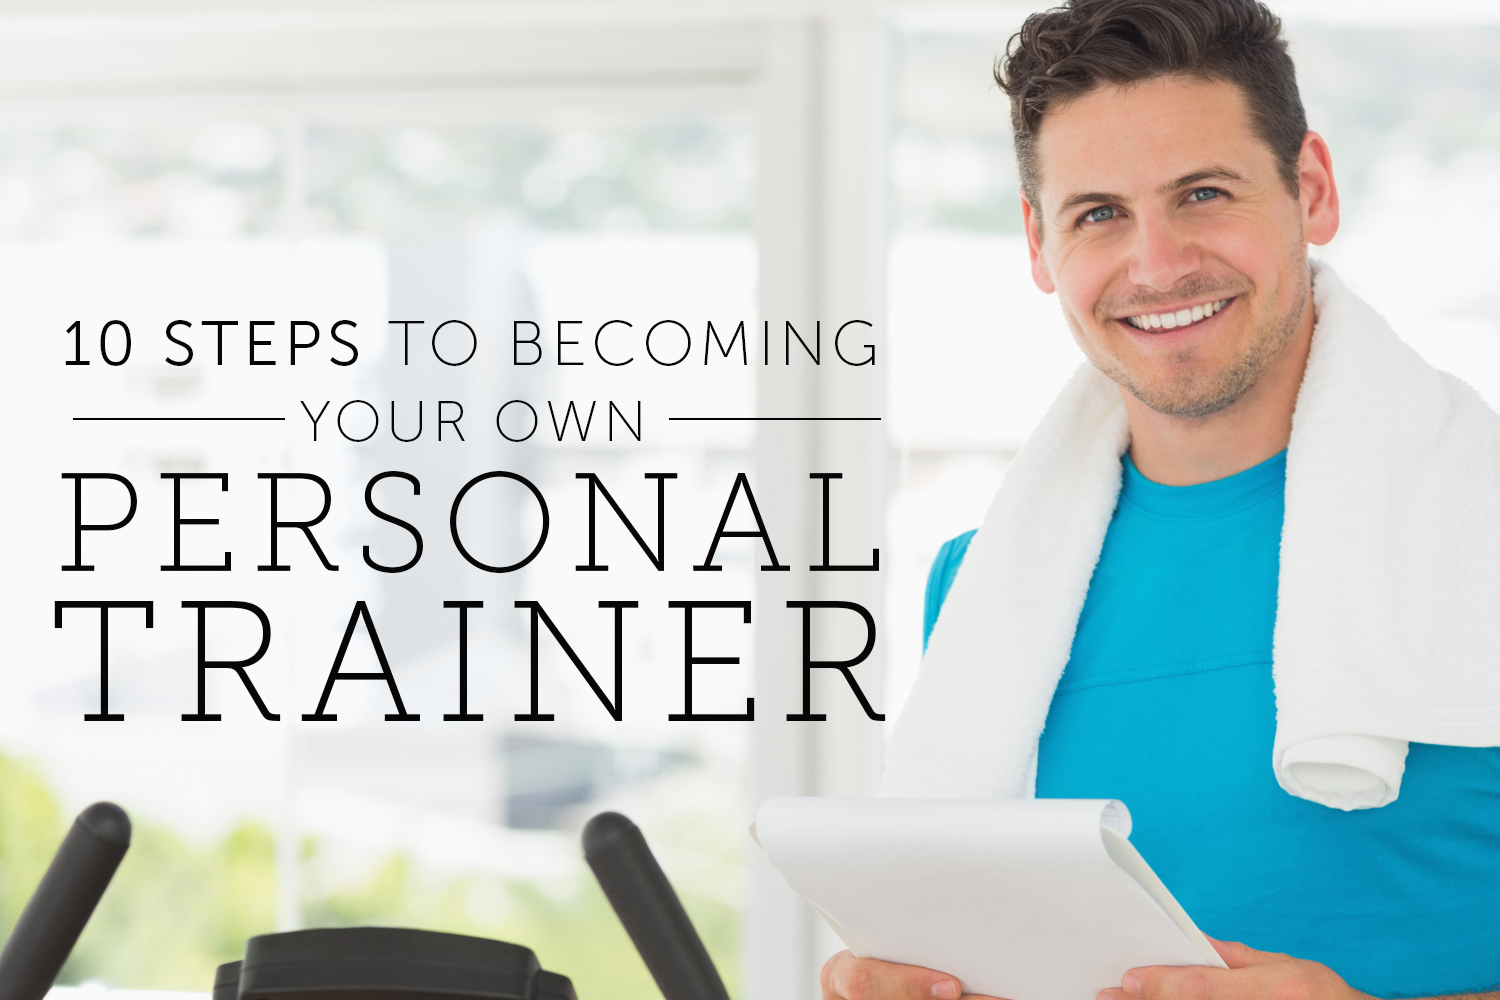 10 steps to becoming your own personal trainer livestrong xflitez Images